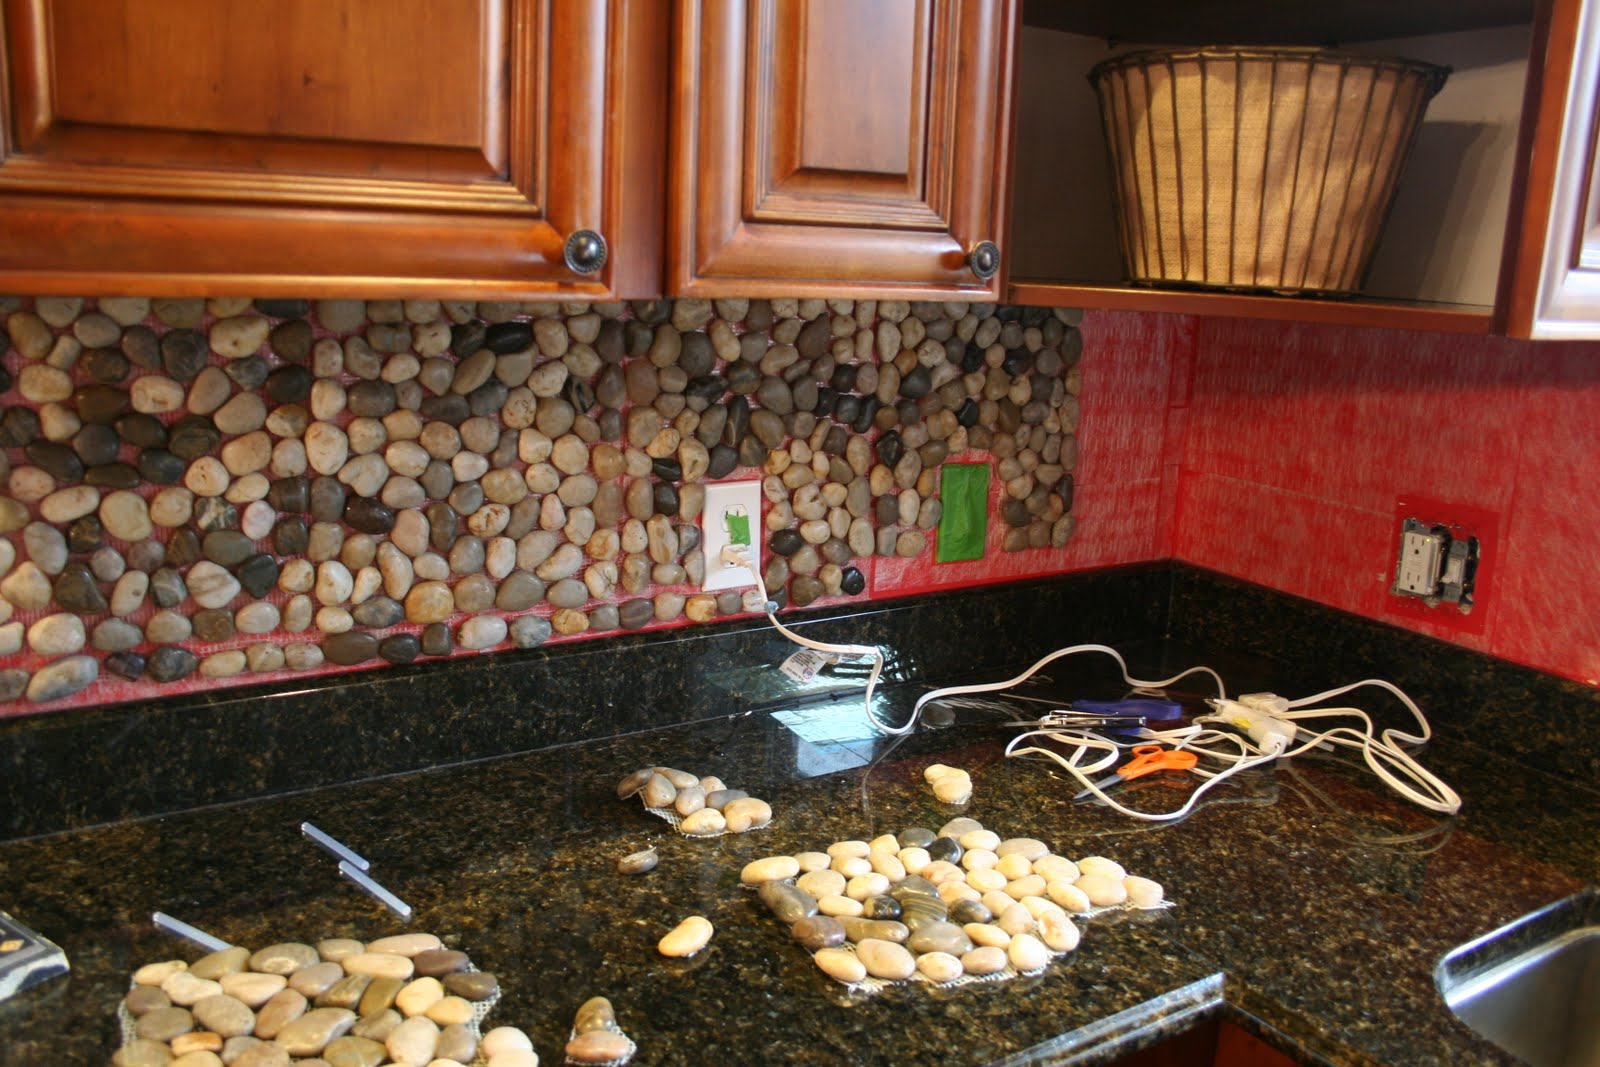 Garden stone kitchen backsplash tutorial how to backsplash home stories a to z Backsplash wall tile